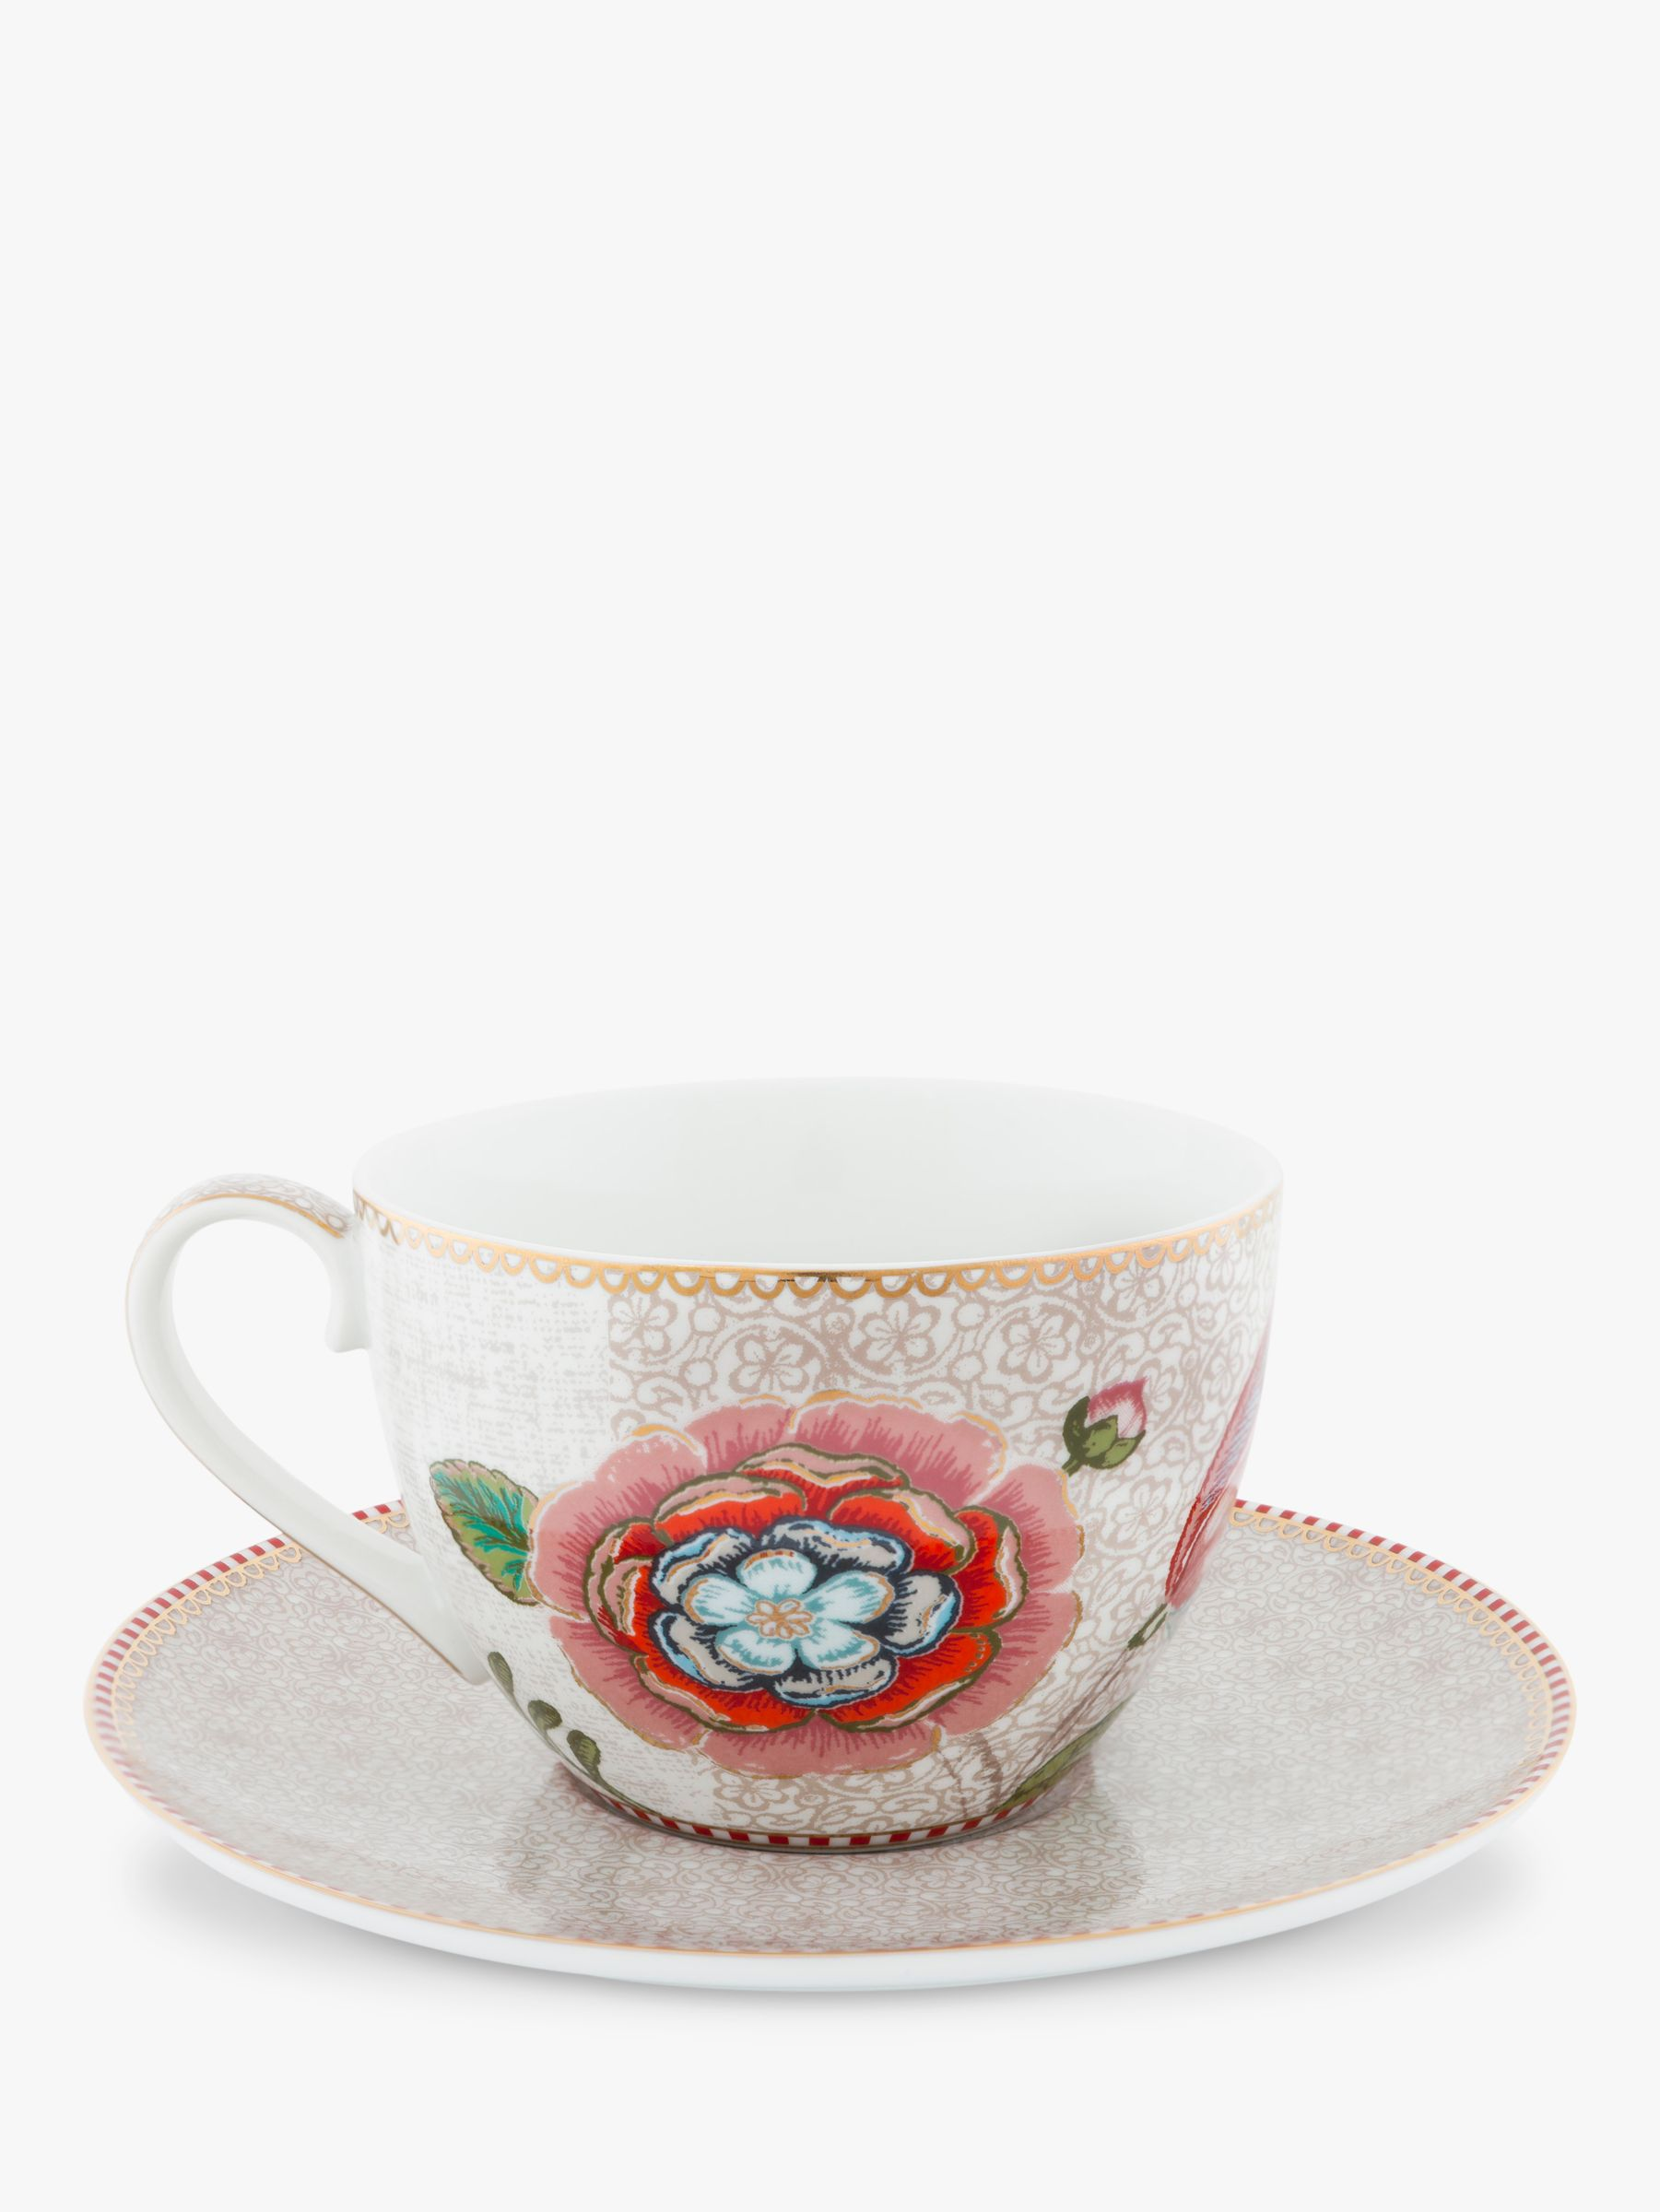 PiP Studio PiP Studio Spring to Life Cup and Saucer, Cream